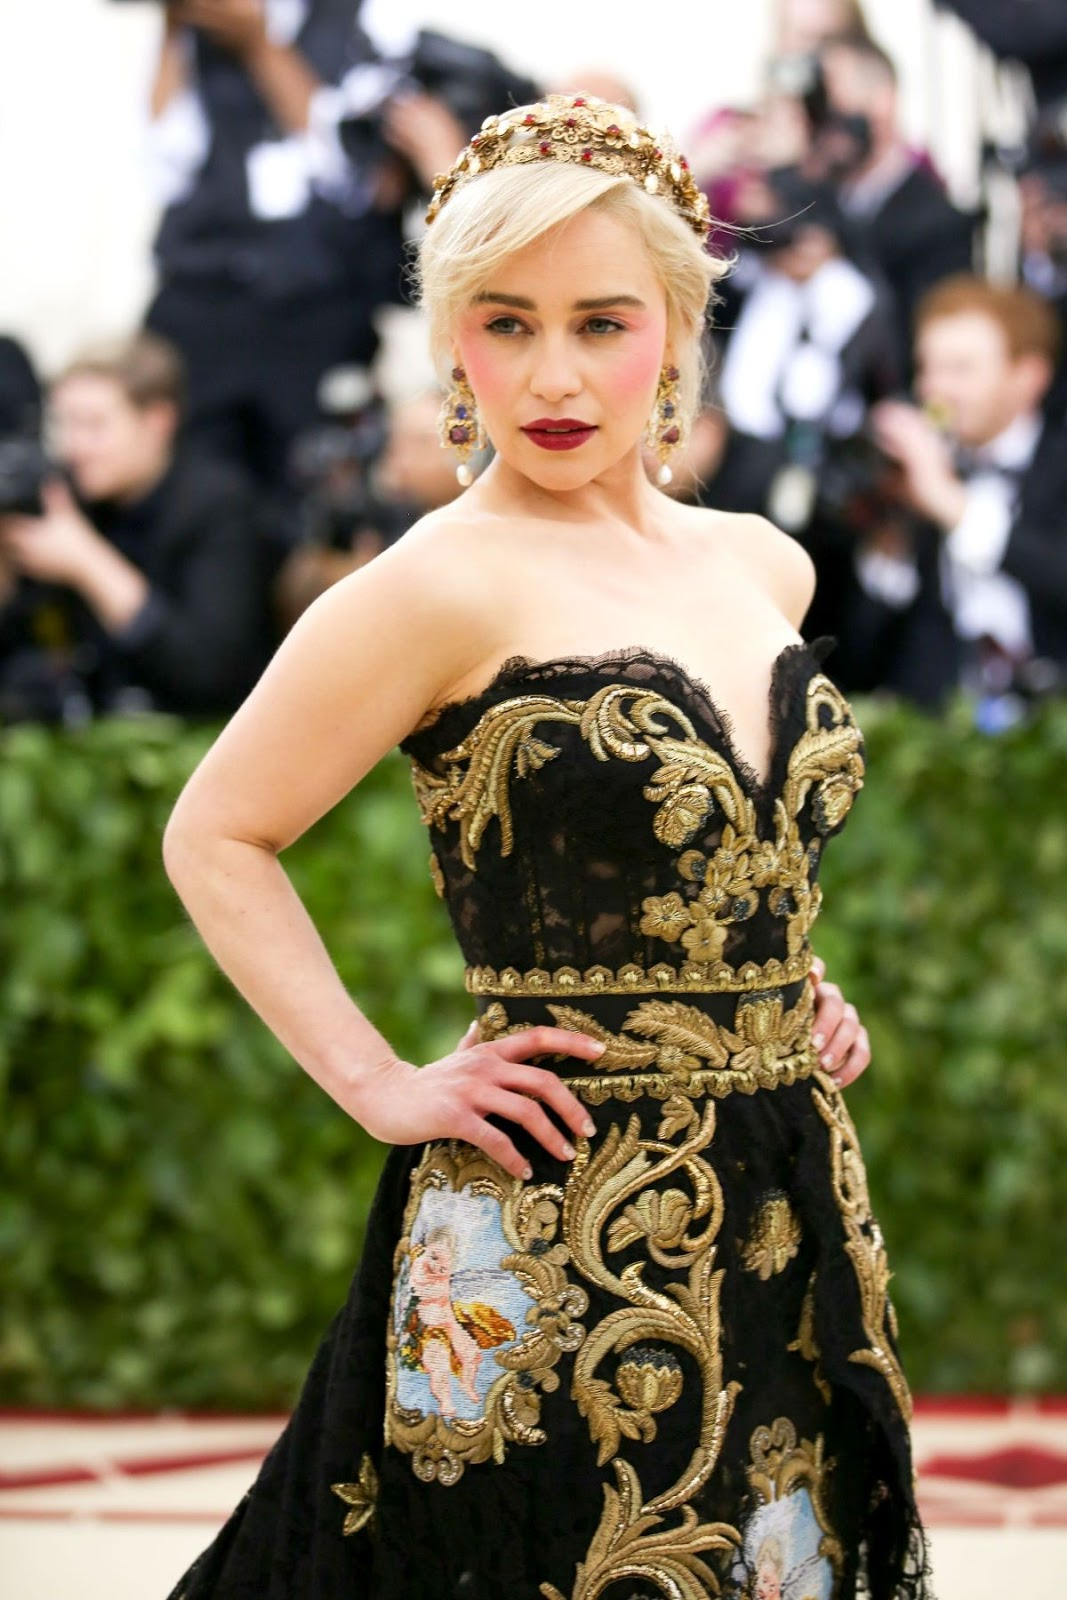 Emilia Clarke Goes Dramatic For The 2018 Met Gala